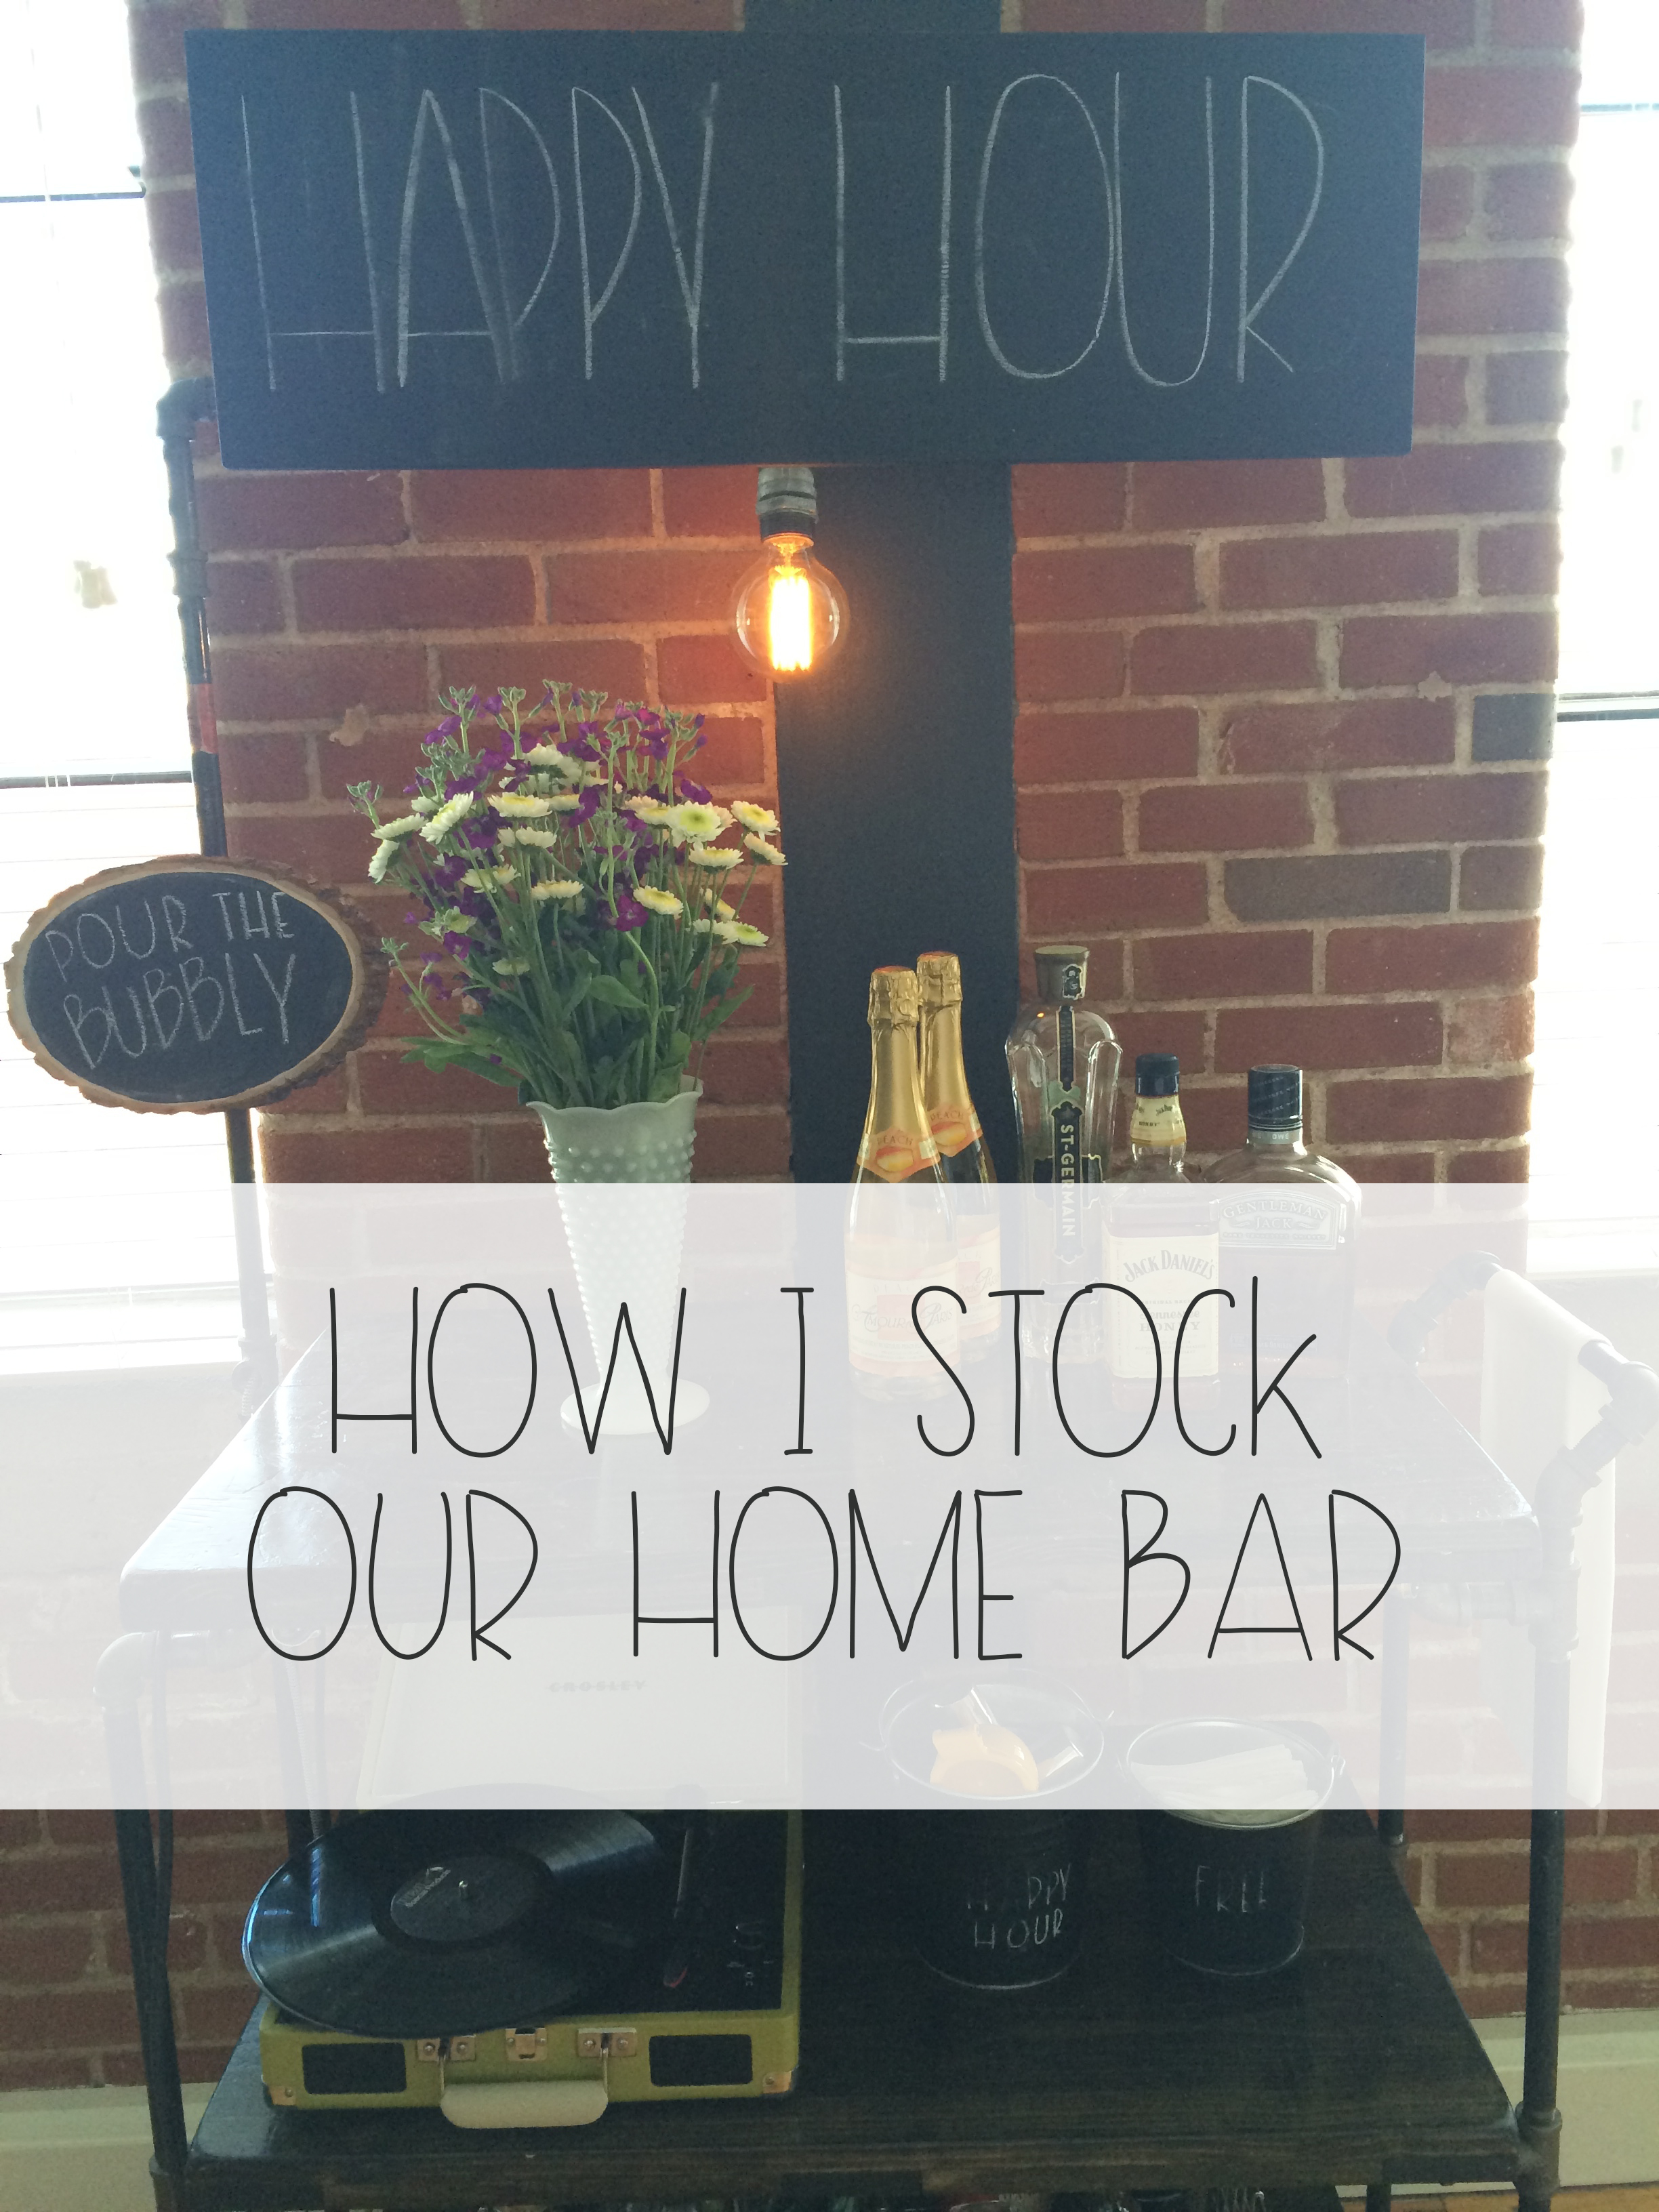 How I Stock Our Home Bar | Red Atumn Co